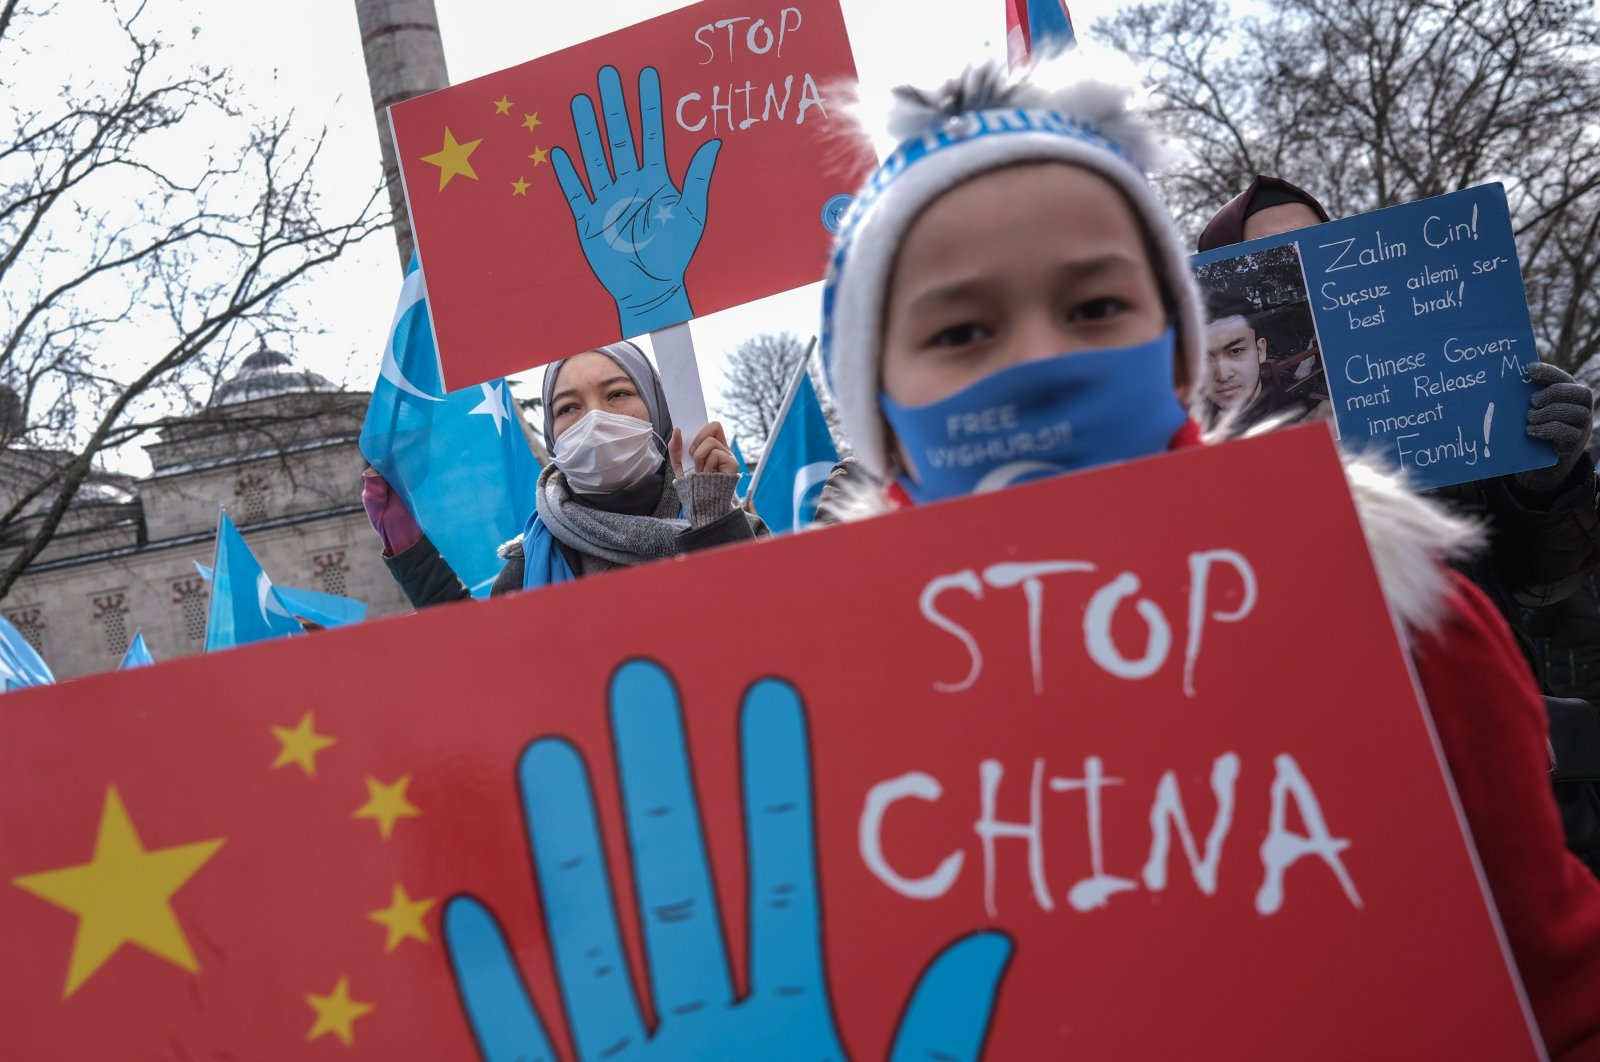 Uyghur protestors who have not heard from their families living in East Turkestan hold placards and Uyghur flags during a protest against China, in Istanbul, Turkey, March 25, 2021. (EPA Photo)